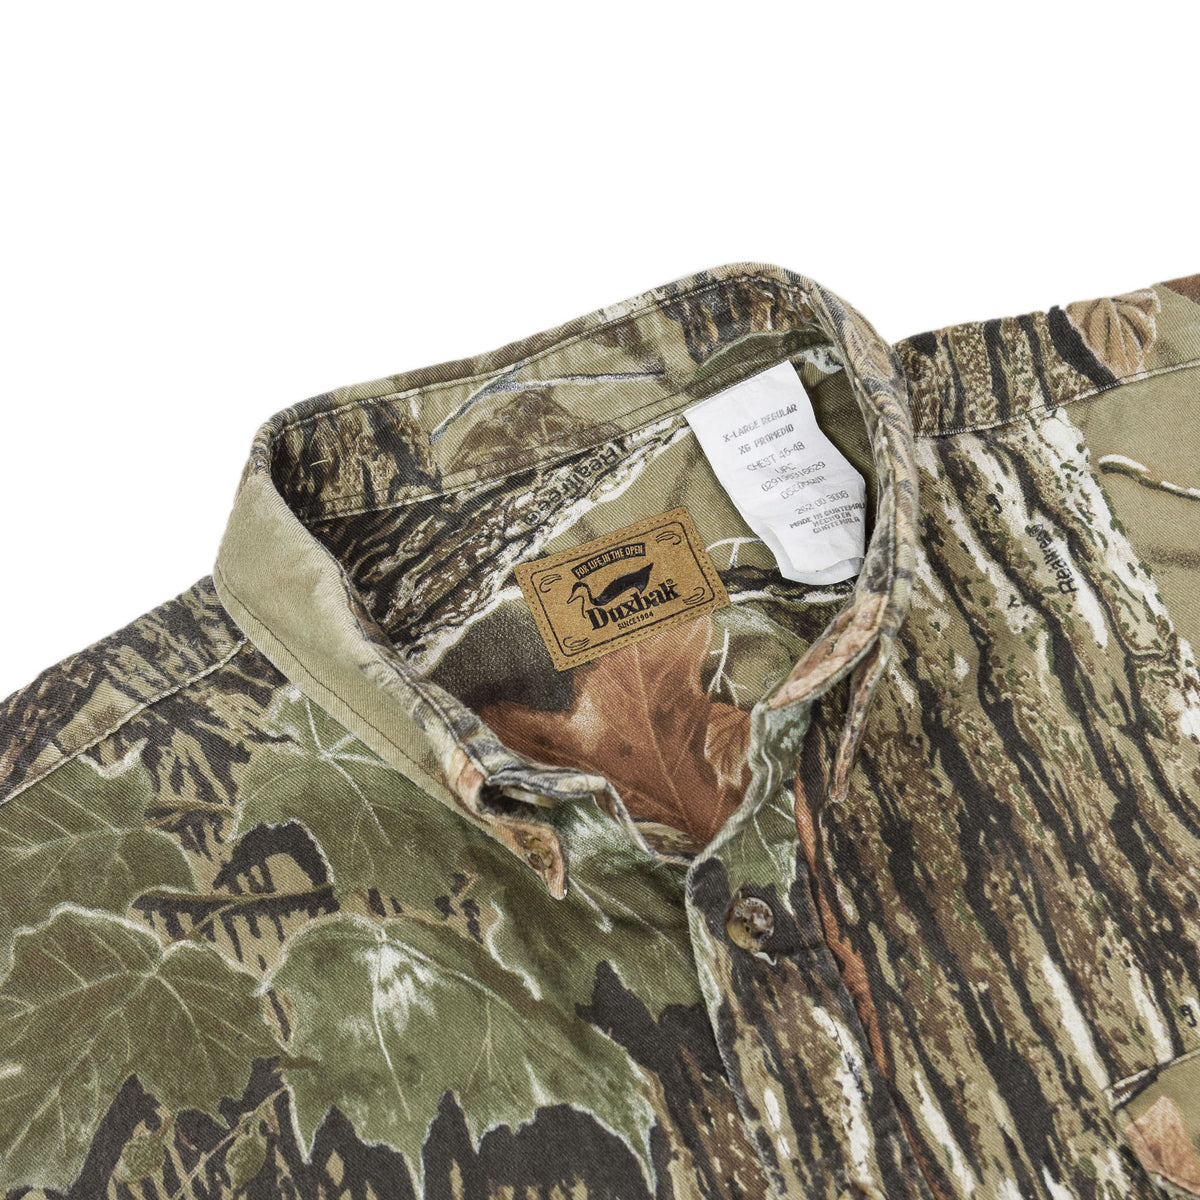 Vintage Duxbak Tree Leaf Camo Hunting Shooting Cotton Long Sleeve Shirt XL label